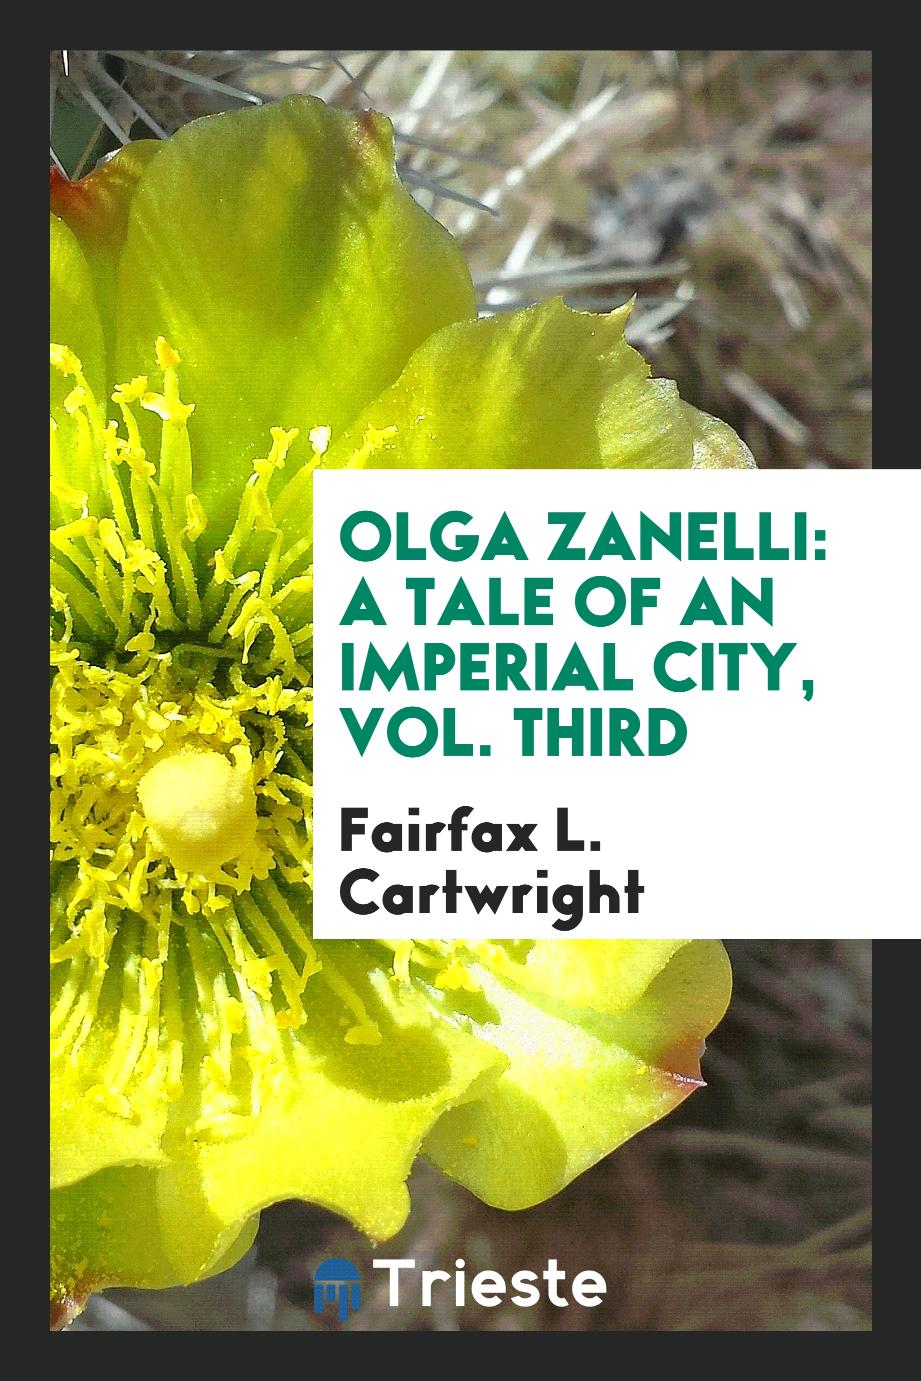 Olga Zanelli: a tale of an imperial city, Vol. third